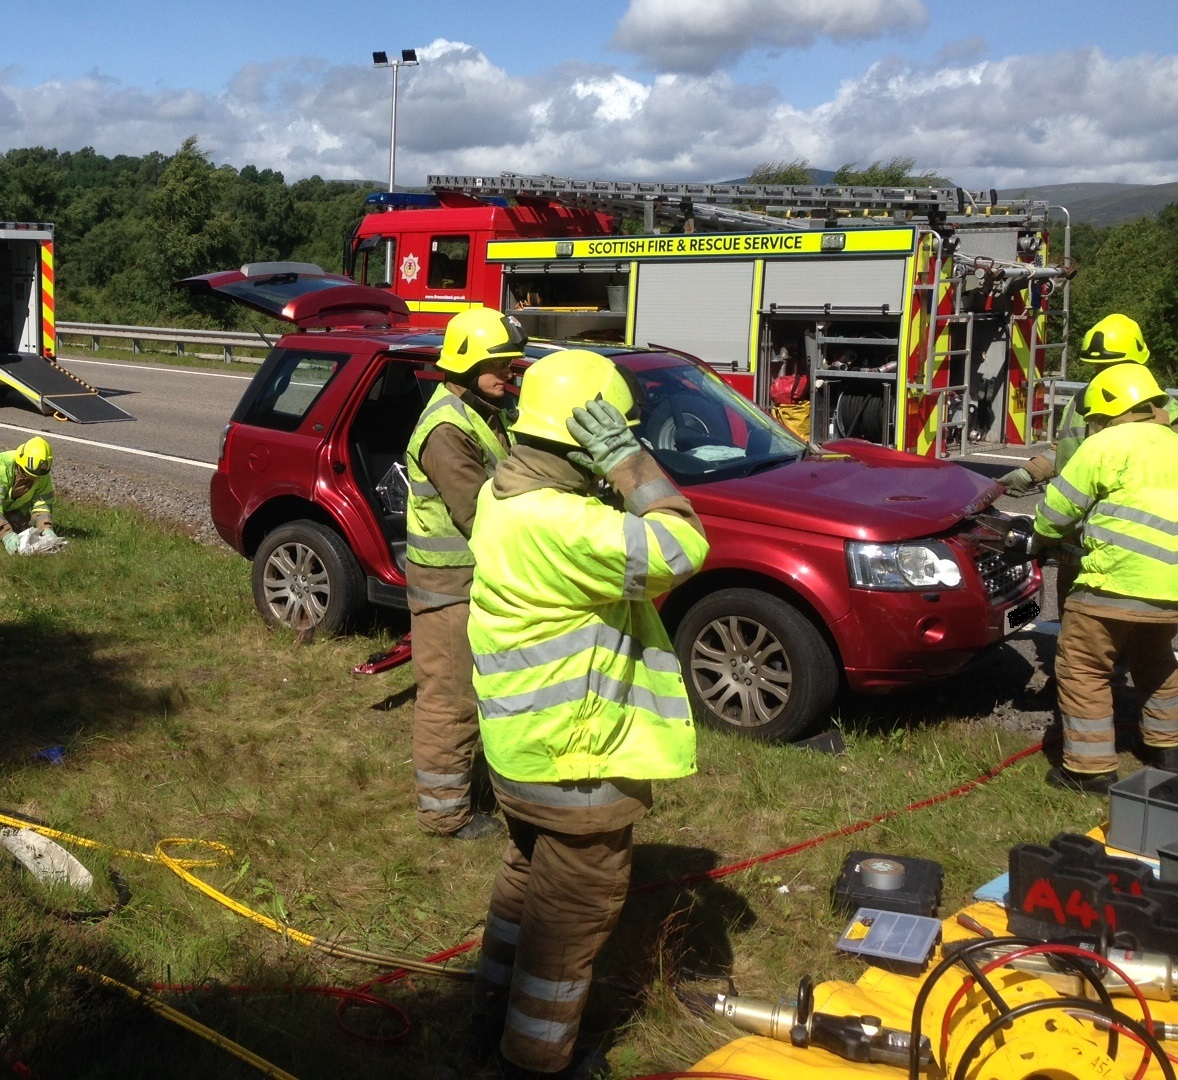 SFRS attended two vehicle collision on A9 near Kingussie